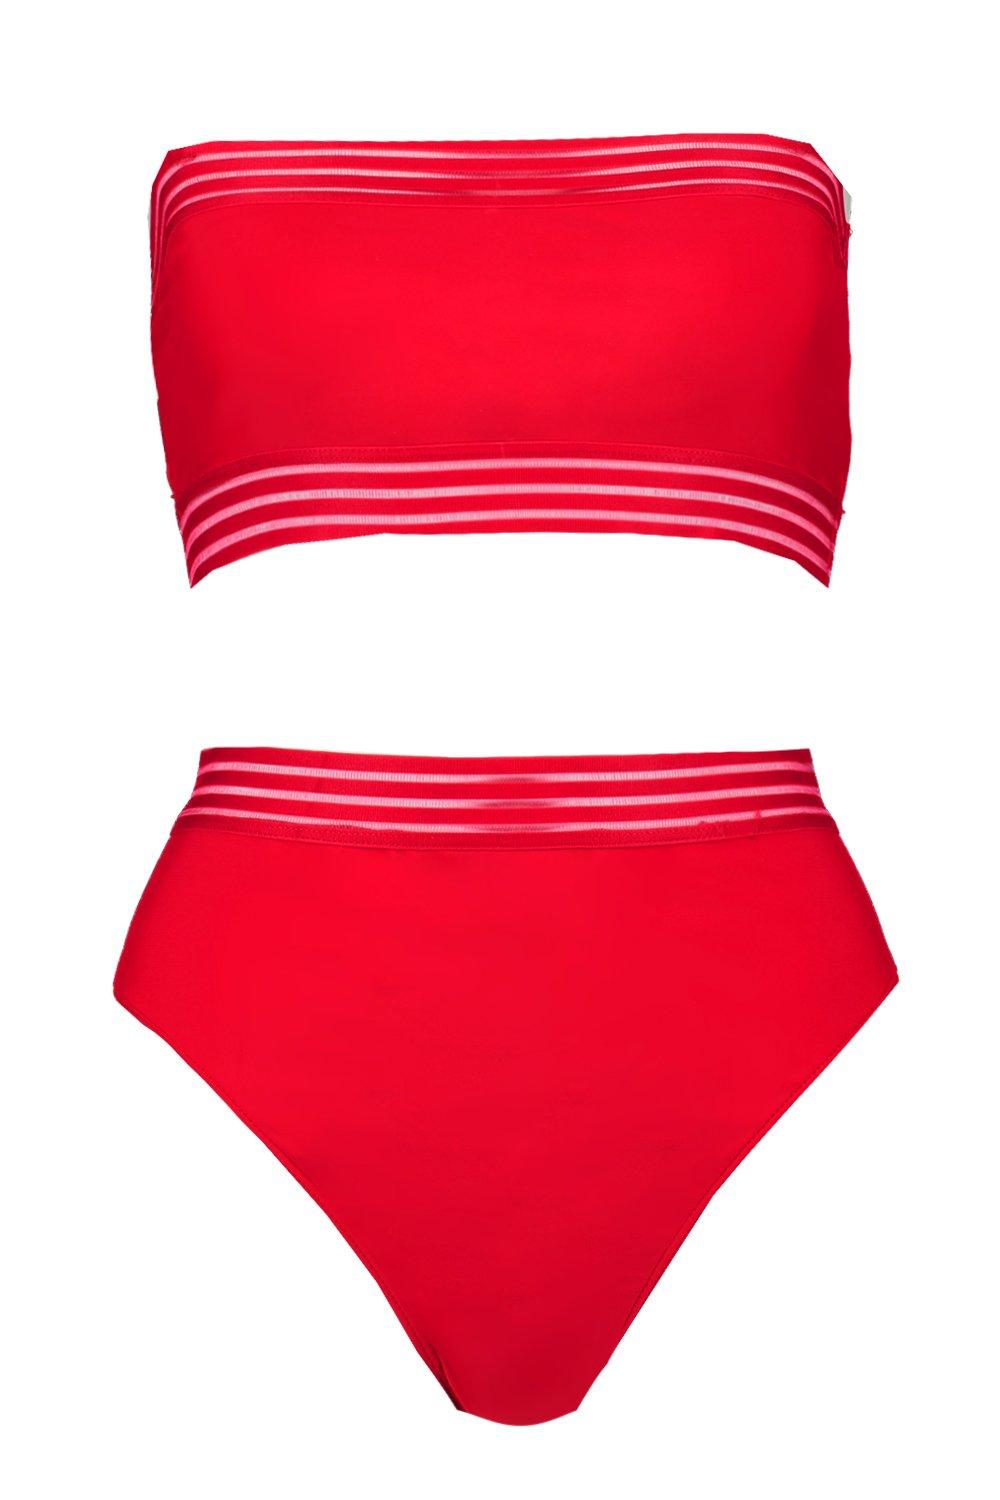 Detail Waisted Bikini Mesh red High HzYwnfYqA